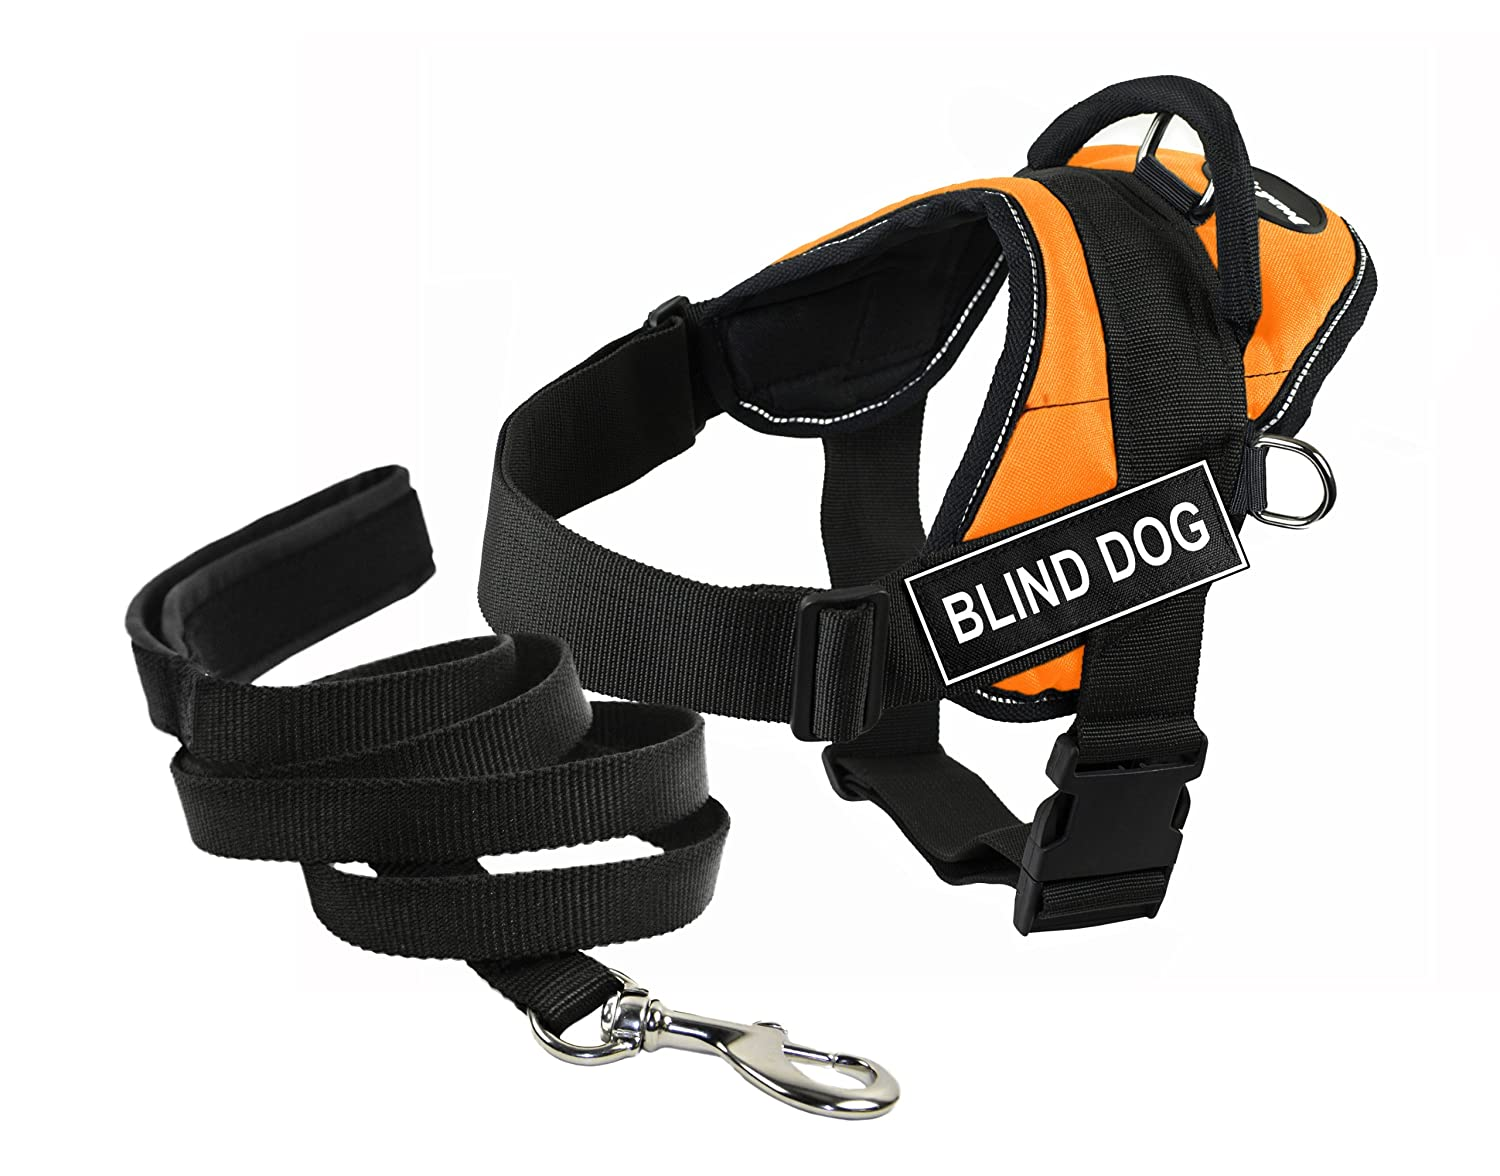 Dean & Tyler's DT Works orange Blind Dog  Harness with, Medium, and Black 6 ft Padded Puppy Leash.